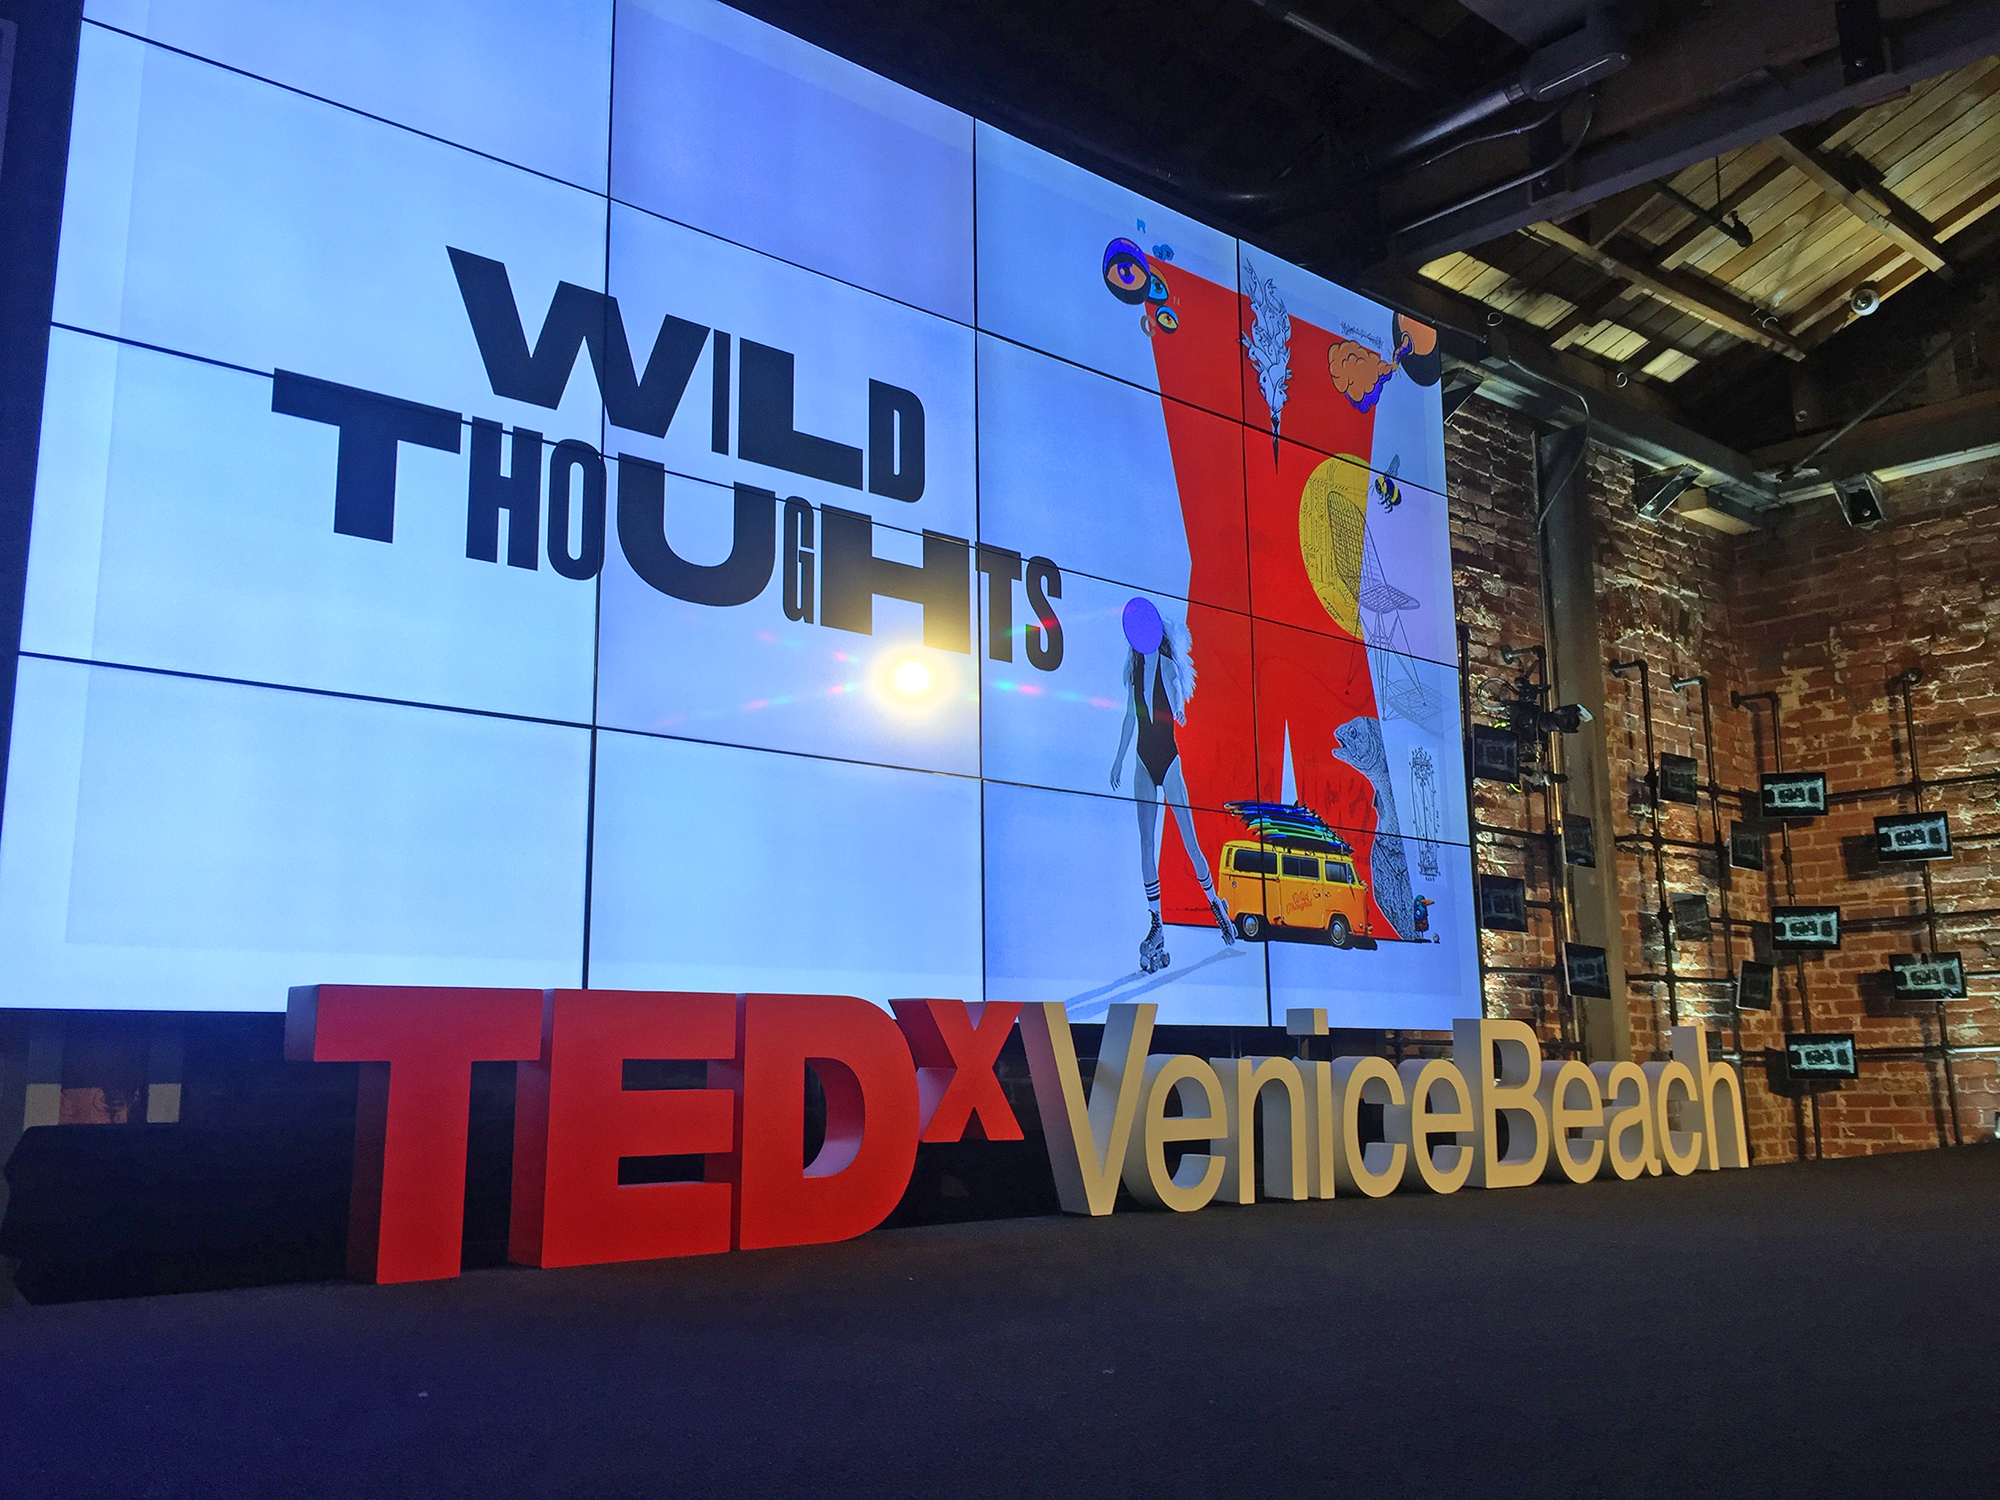 TEDx Venice Beach 2017 was held at the Charles and Ray Eames Office Building in Venice -